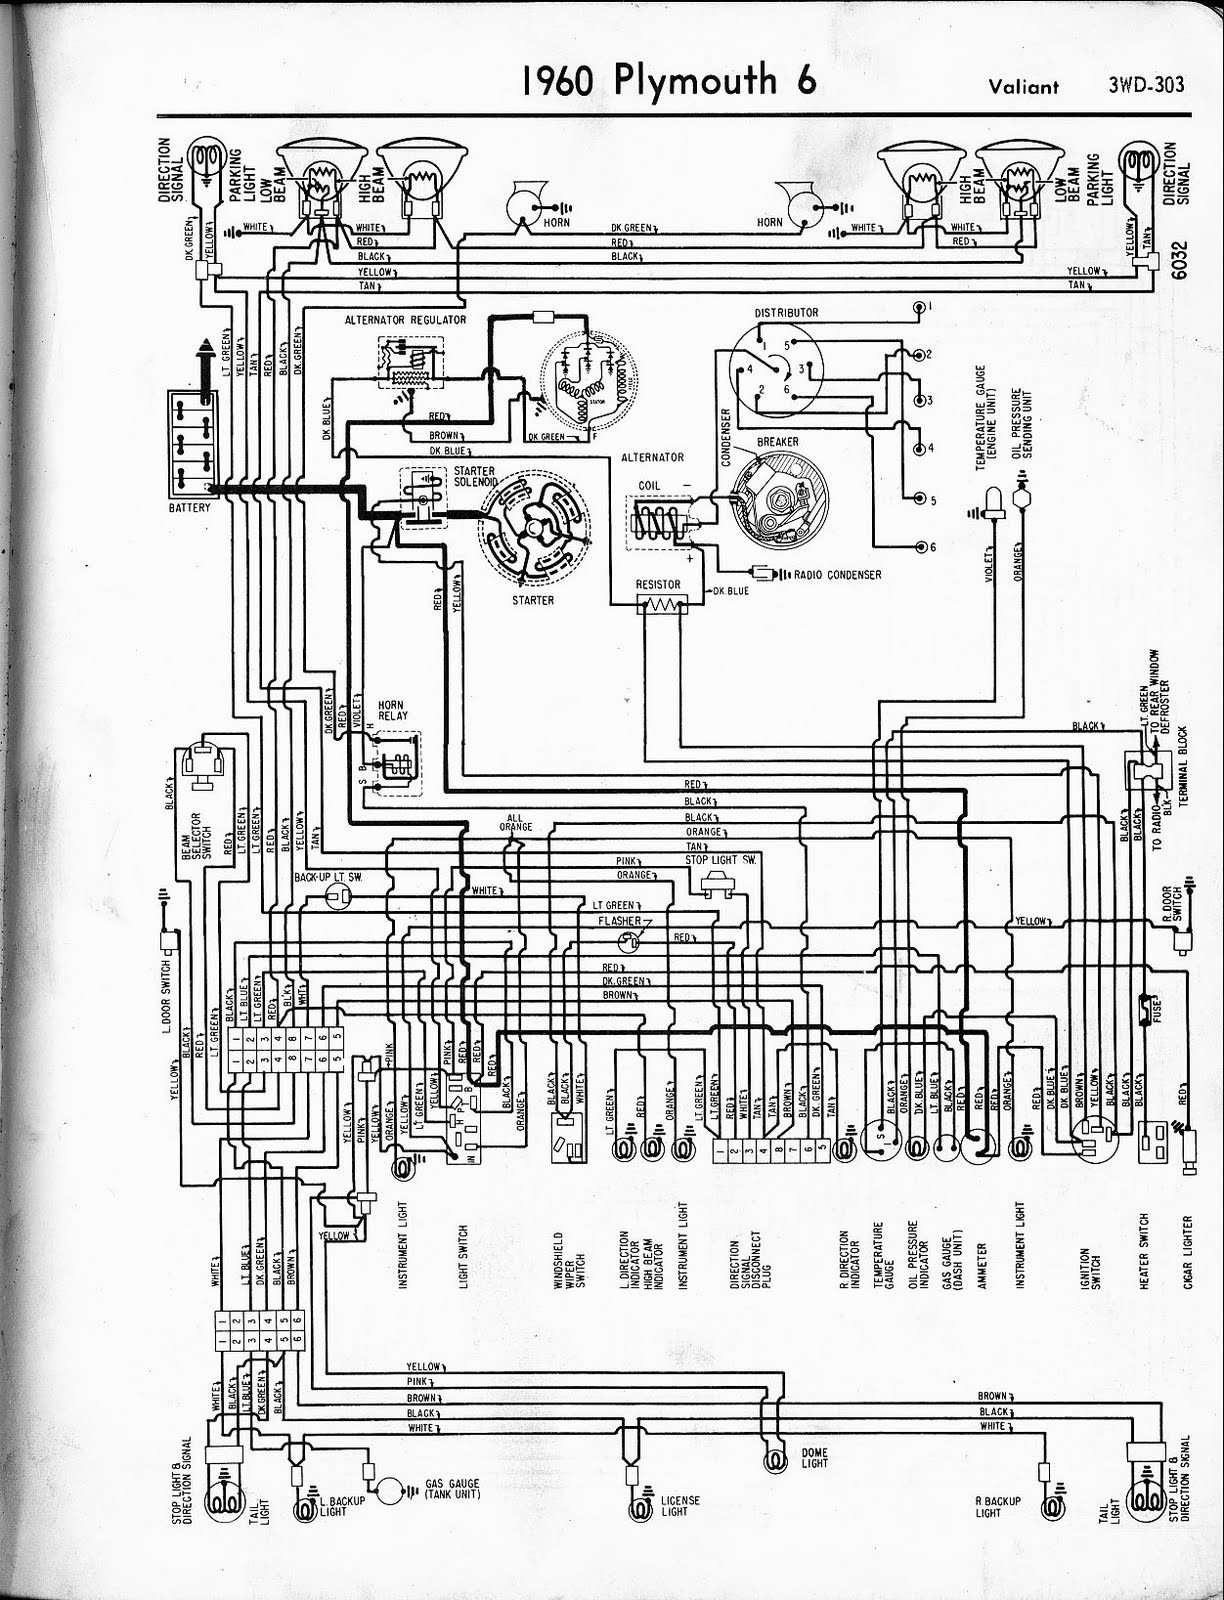 1960+Plymouth+Valiant+V6+Wiring+Diagram free auto wiring diagram 1960 plymouth valiant wiring diagram plymouth wiring diagrams at bayanpartner.co